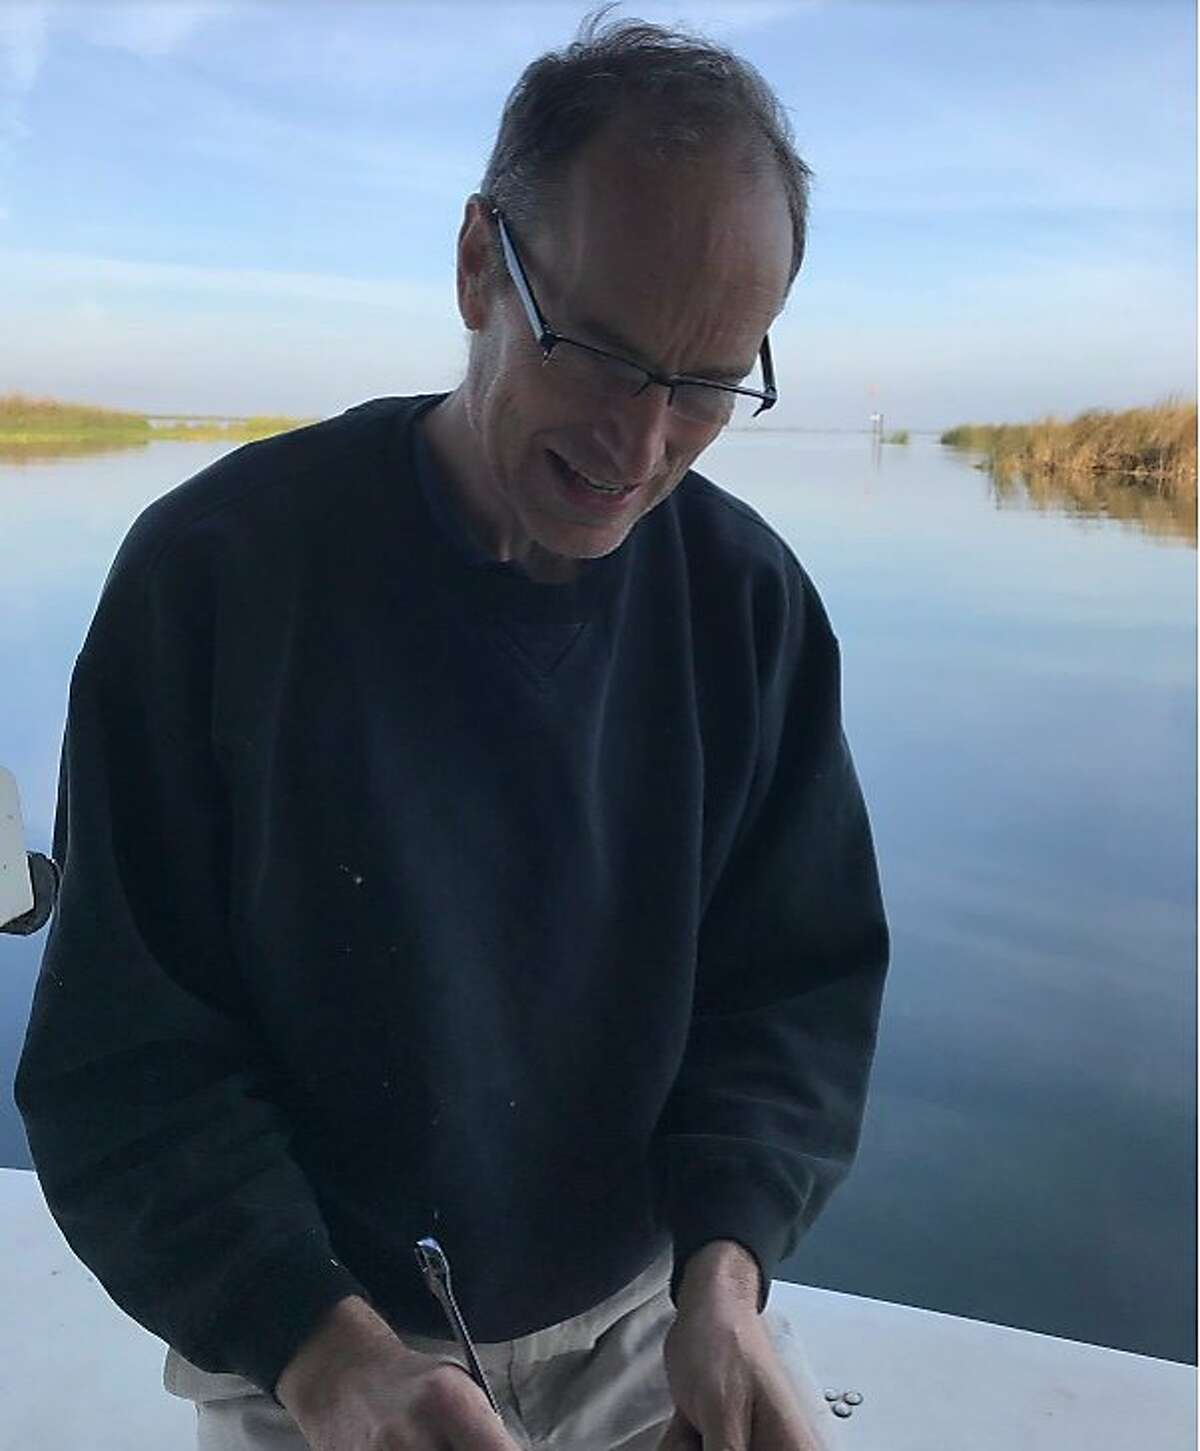 Rio Mobility CEO Bart Kylstra, 52, was killed Wednesday night. Kylstra was remembered by family and friends as a thoughtful engineer and avid boater who doted on his extended family.